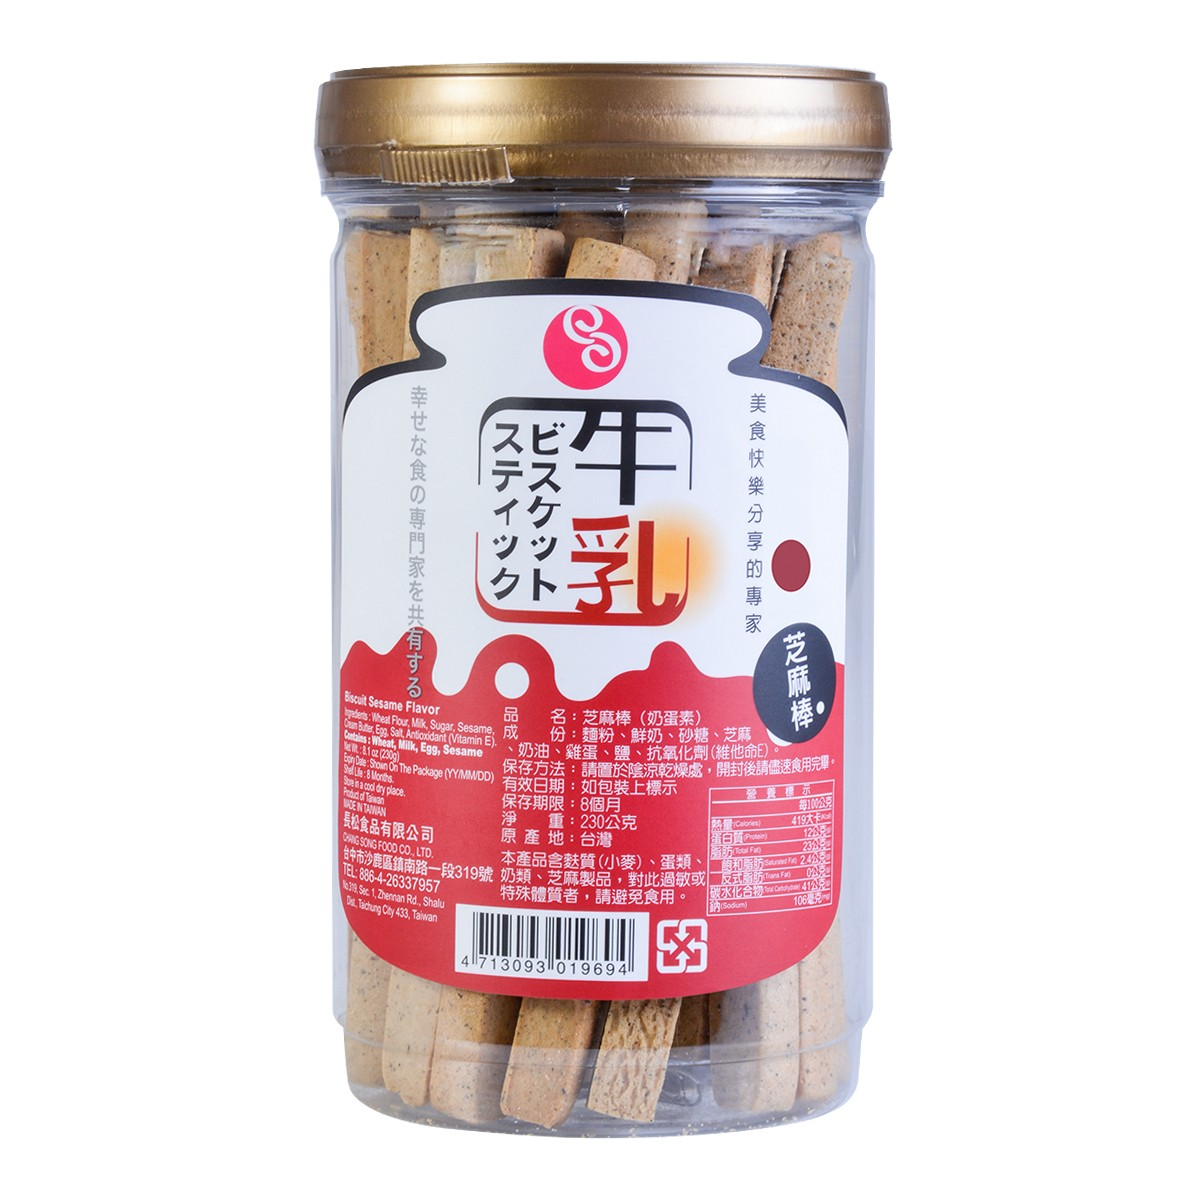 Yamibuy.com:Customer reviews:CHANGSONG Biscuit Sesame Flavor 230g